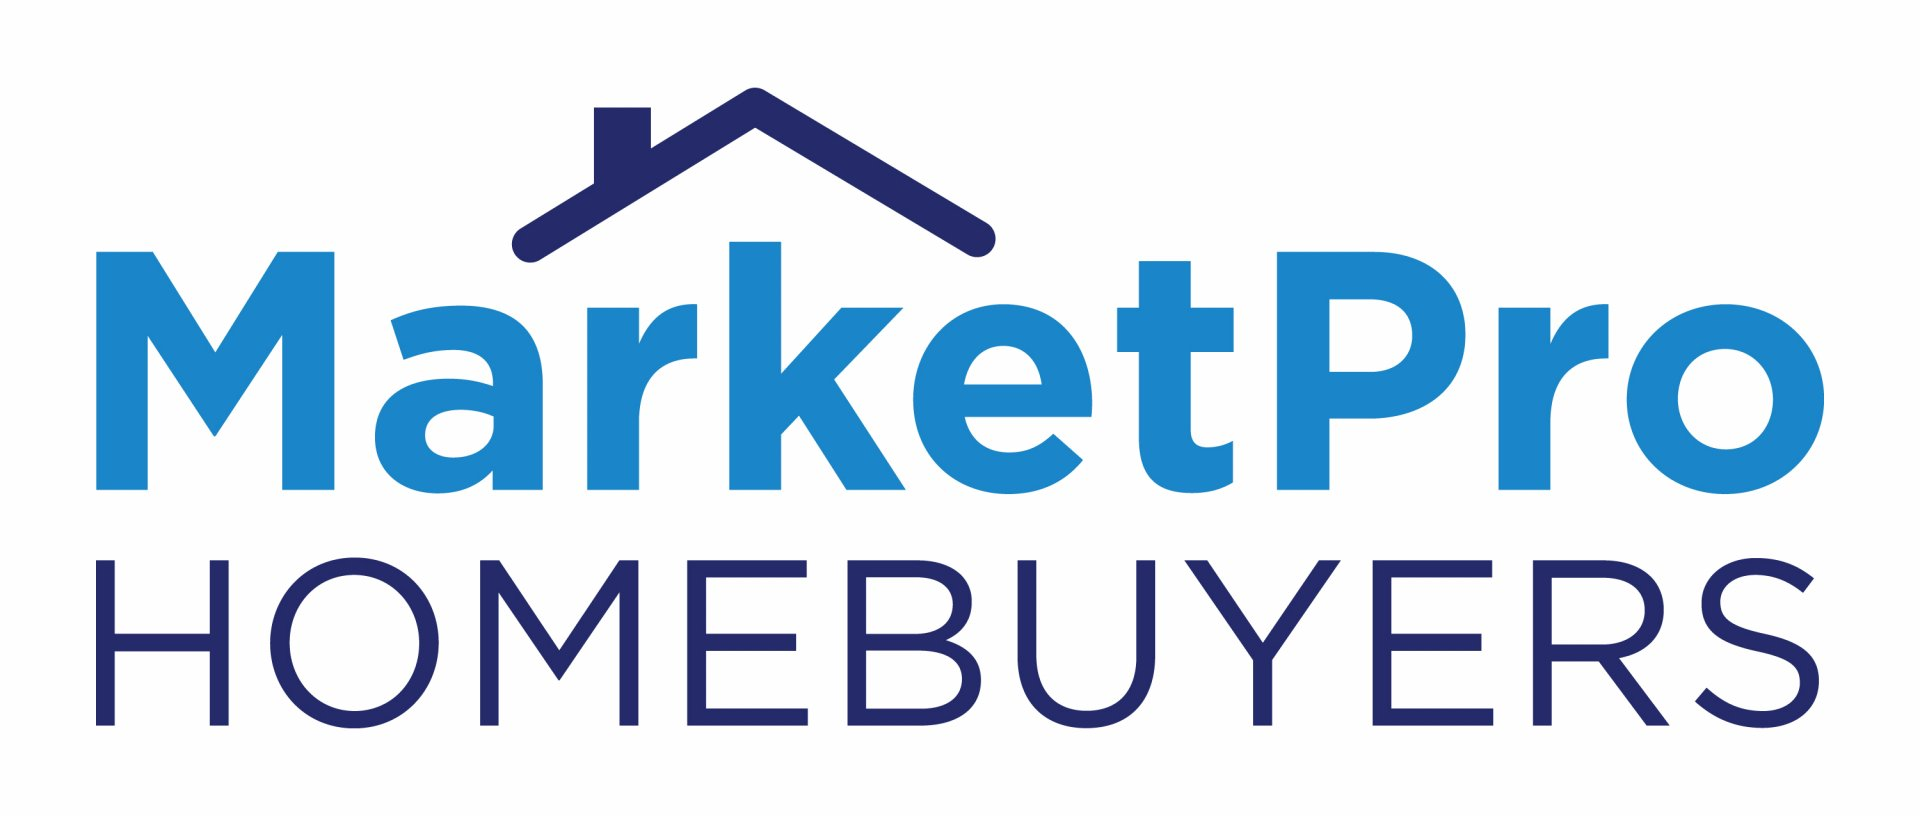 MarketPro Homebuyers Main Company logo